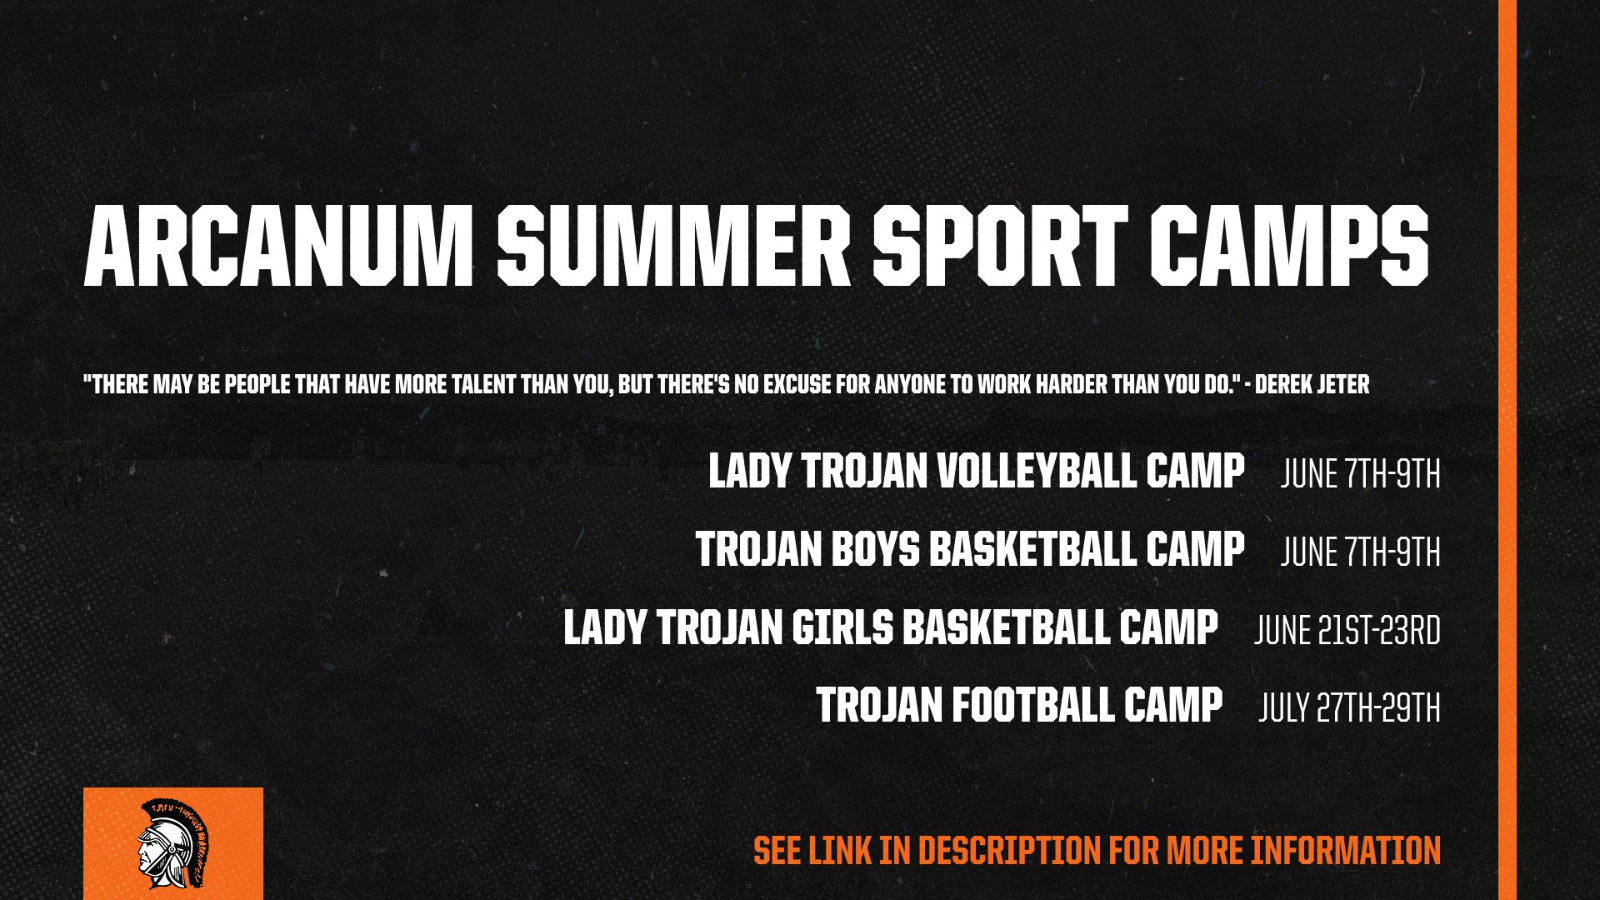 Arcanum Summer Youth Camps